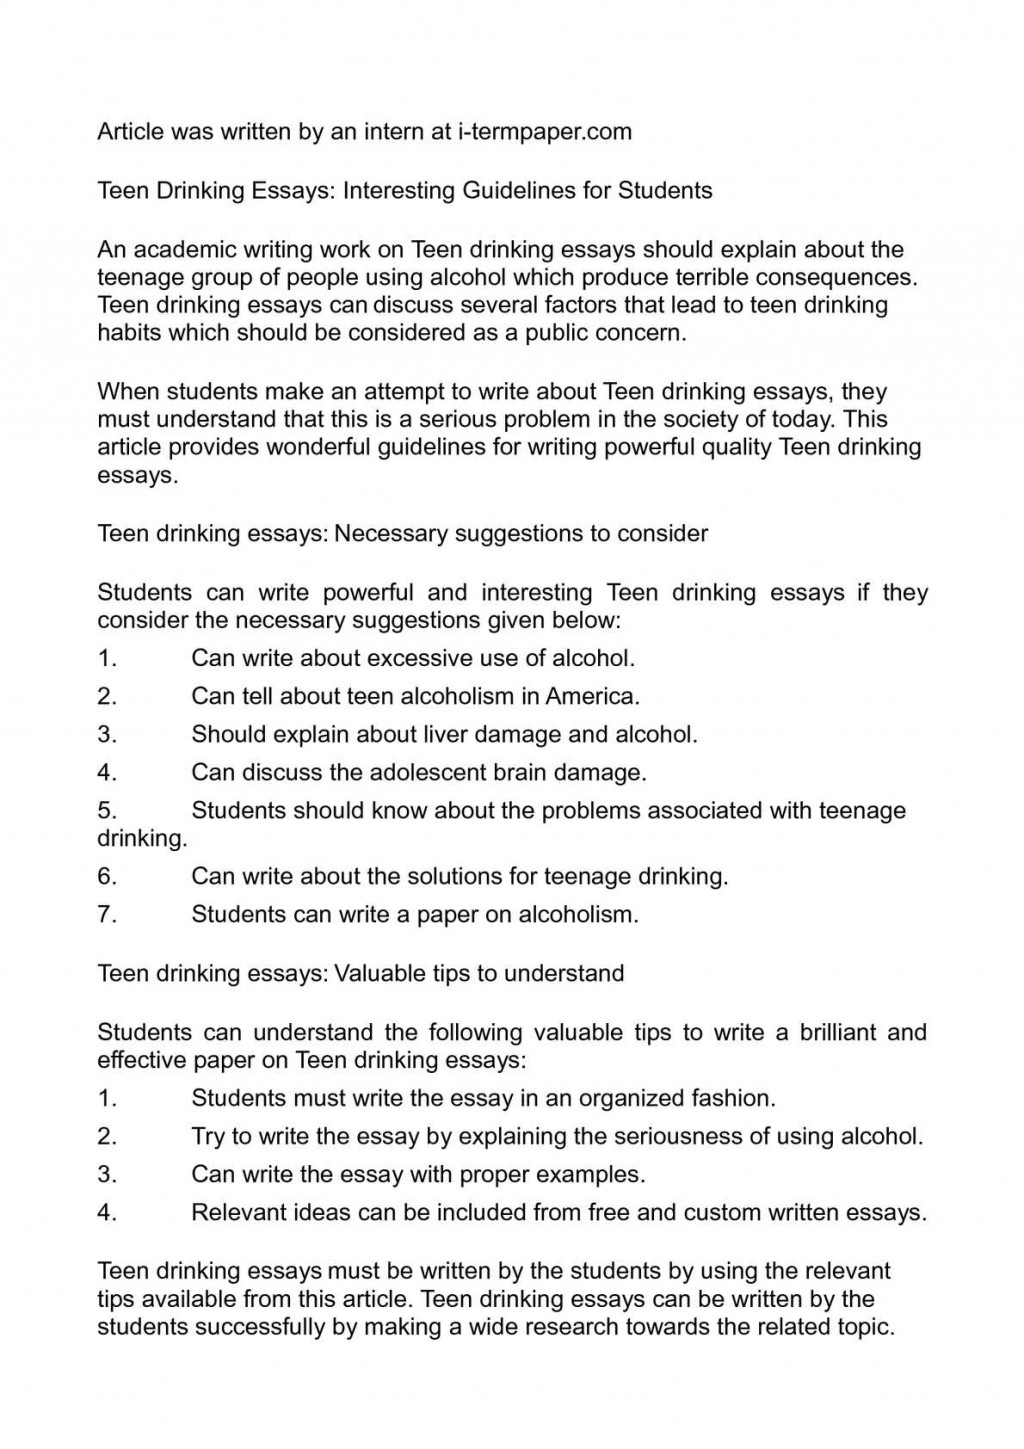 001 Teenage Drinking Essay Example Singular Smoking And Conclusion Large